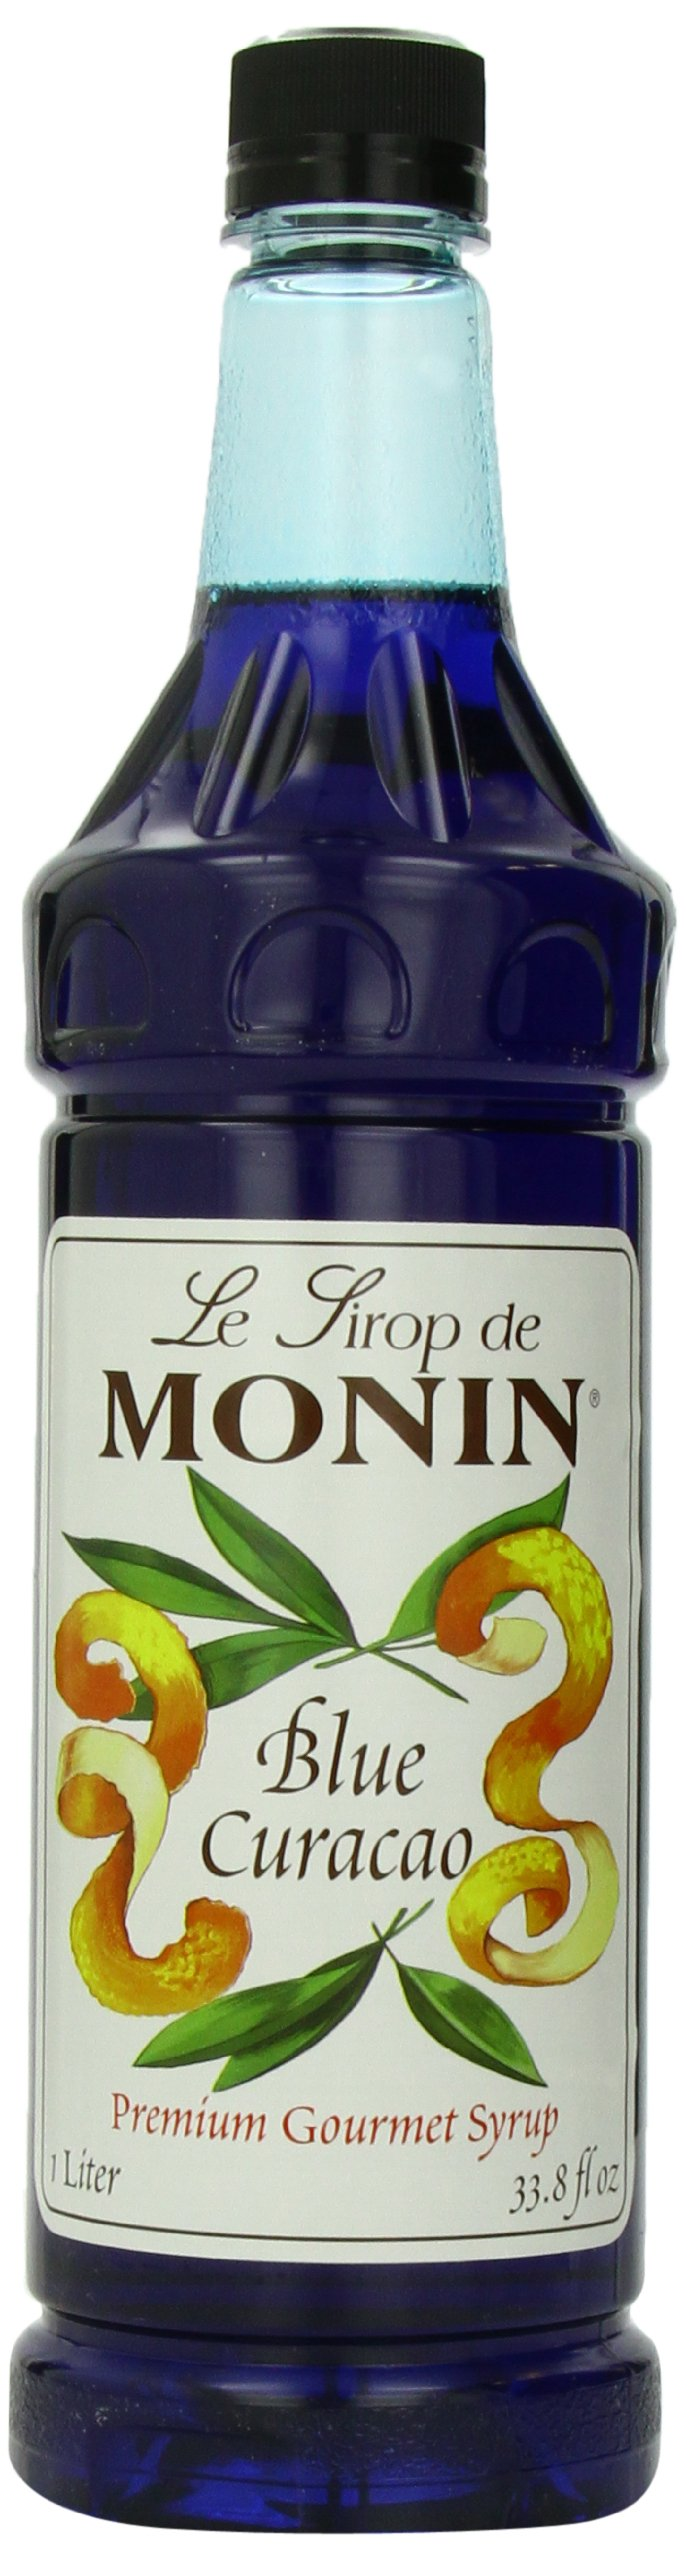 Monin Flavored Syrup, Blue Curacao, 33.8-Ounce Plastic Bottles (Pack of 4)